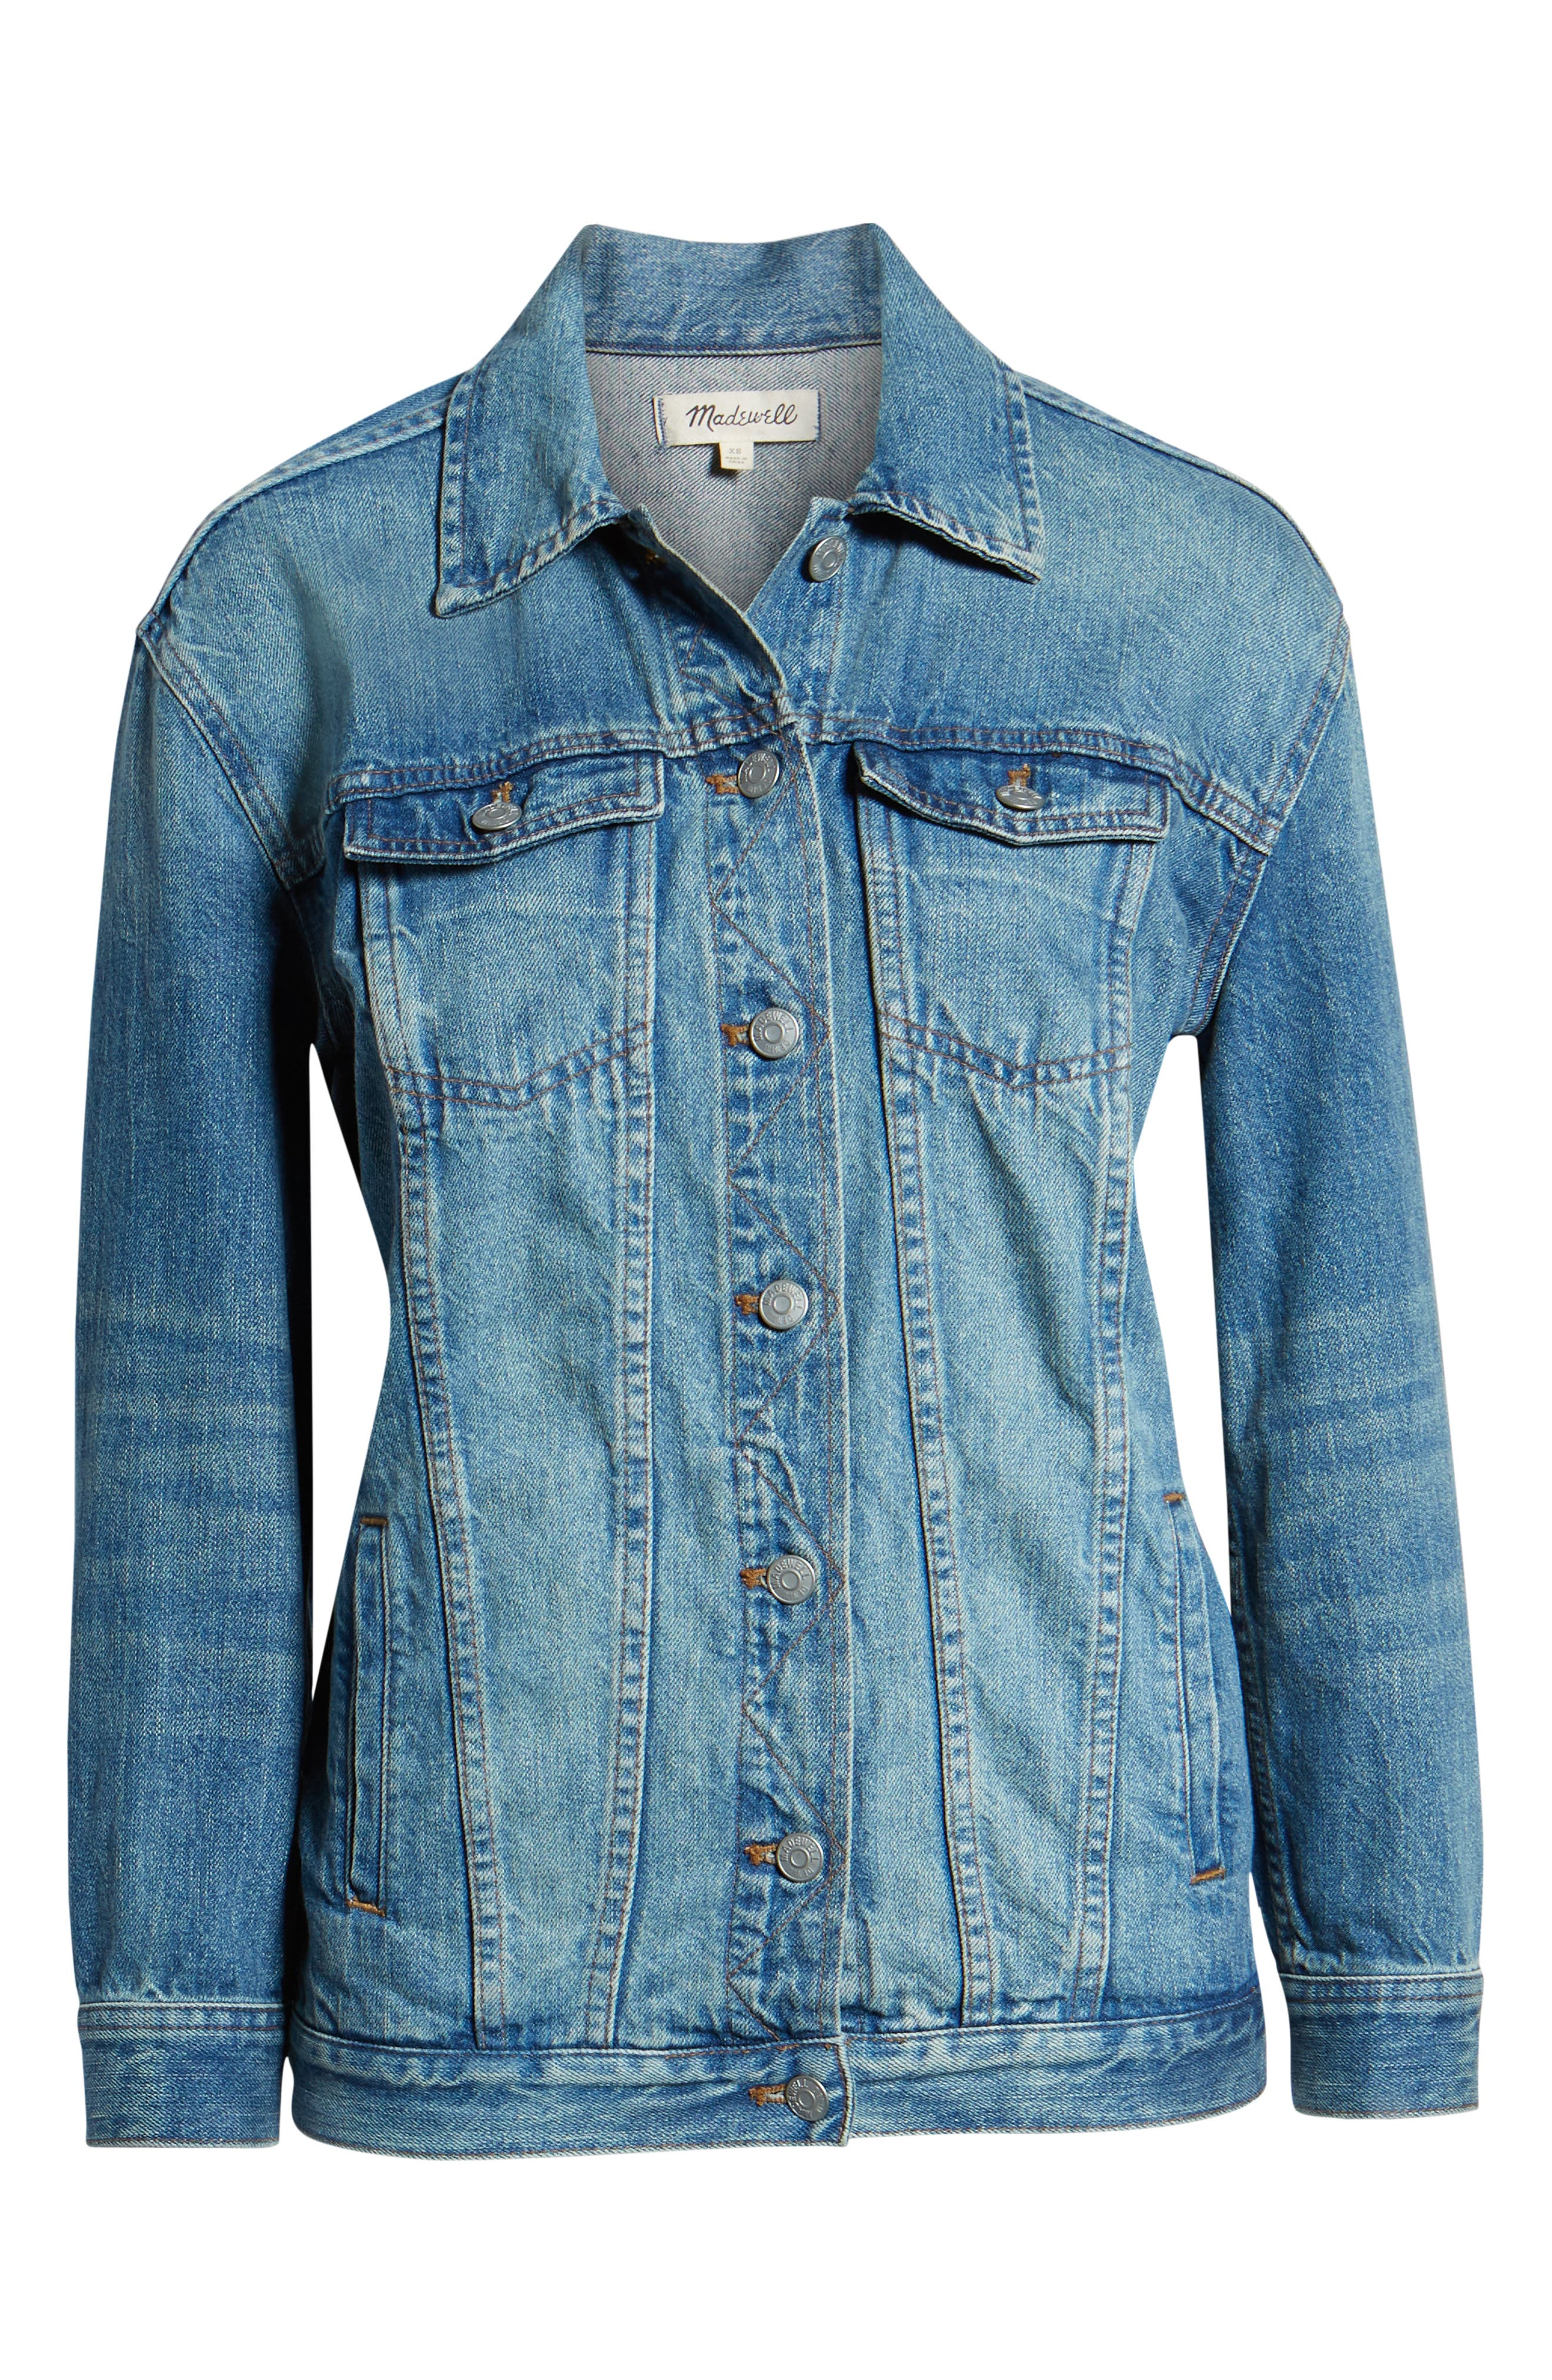 MADEWELL, Oversize Denim Jacket, Alternate thumbnail 5, color, CAPSTONE WASH